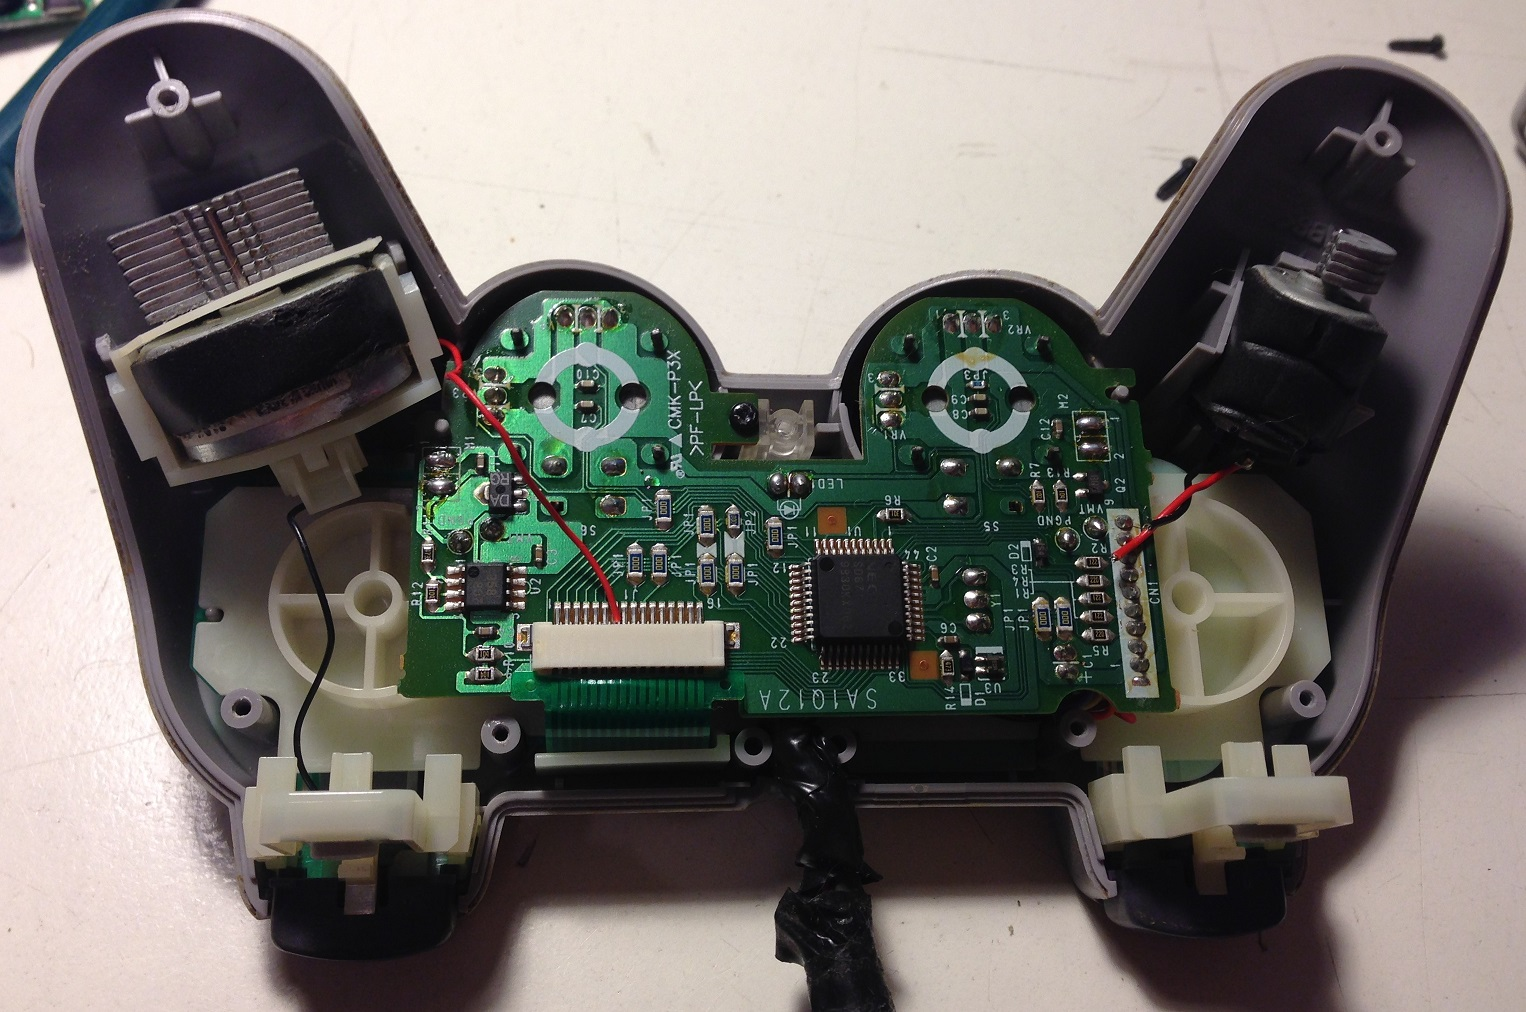 Playstation Controller Hack With Arduino Mini And Nrf24l01 Adapter Wiring Diagram On For Ps2 To Usb Psx Internals Bigmotor Smallmotor